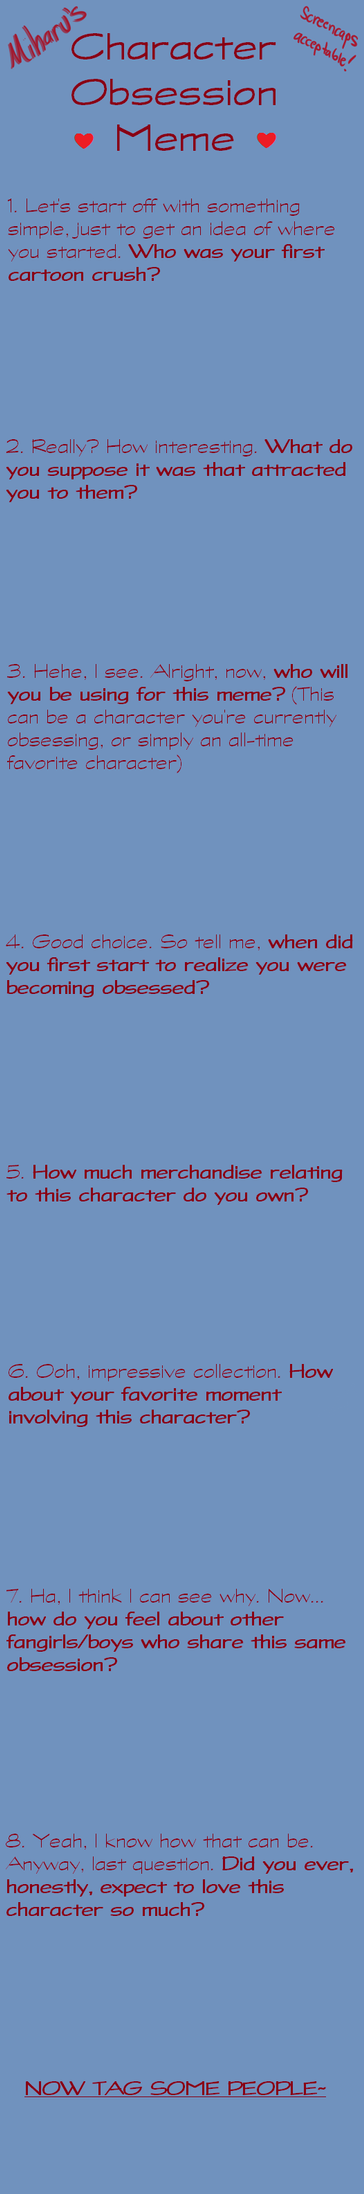 Character Obsession Meme BLANK by MiharuWatanabe